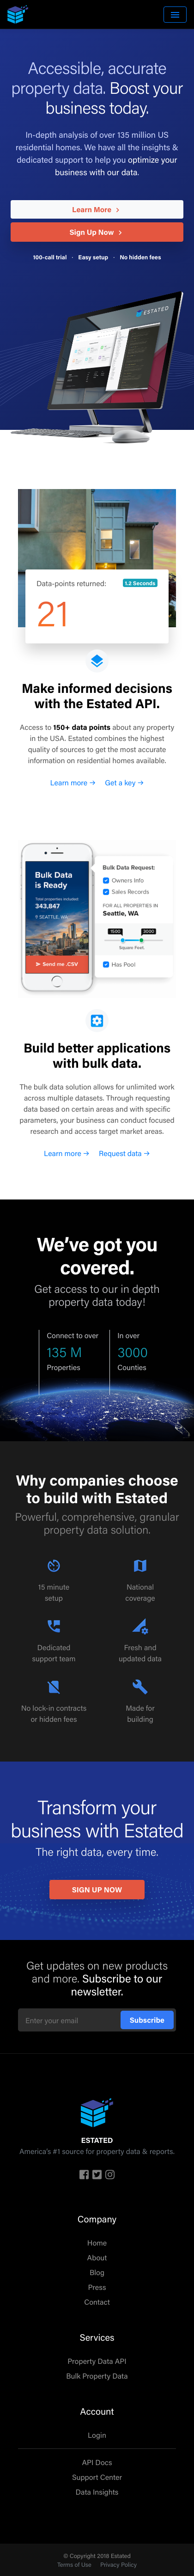 Example of Design for Real Estate, Real Estate Listings, Mobile Landing Page by estated.com | Mobile Landing Page Design